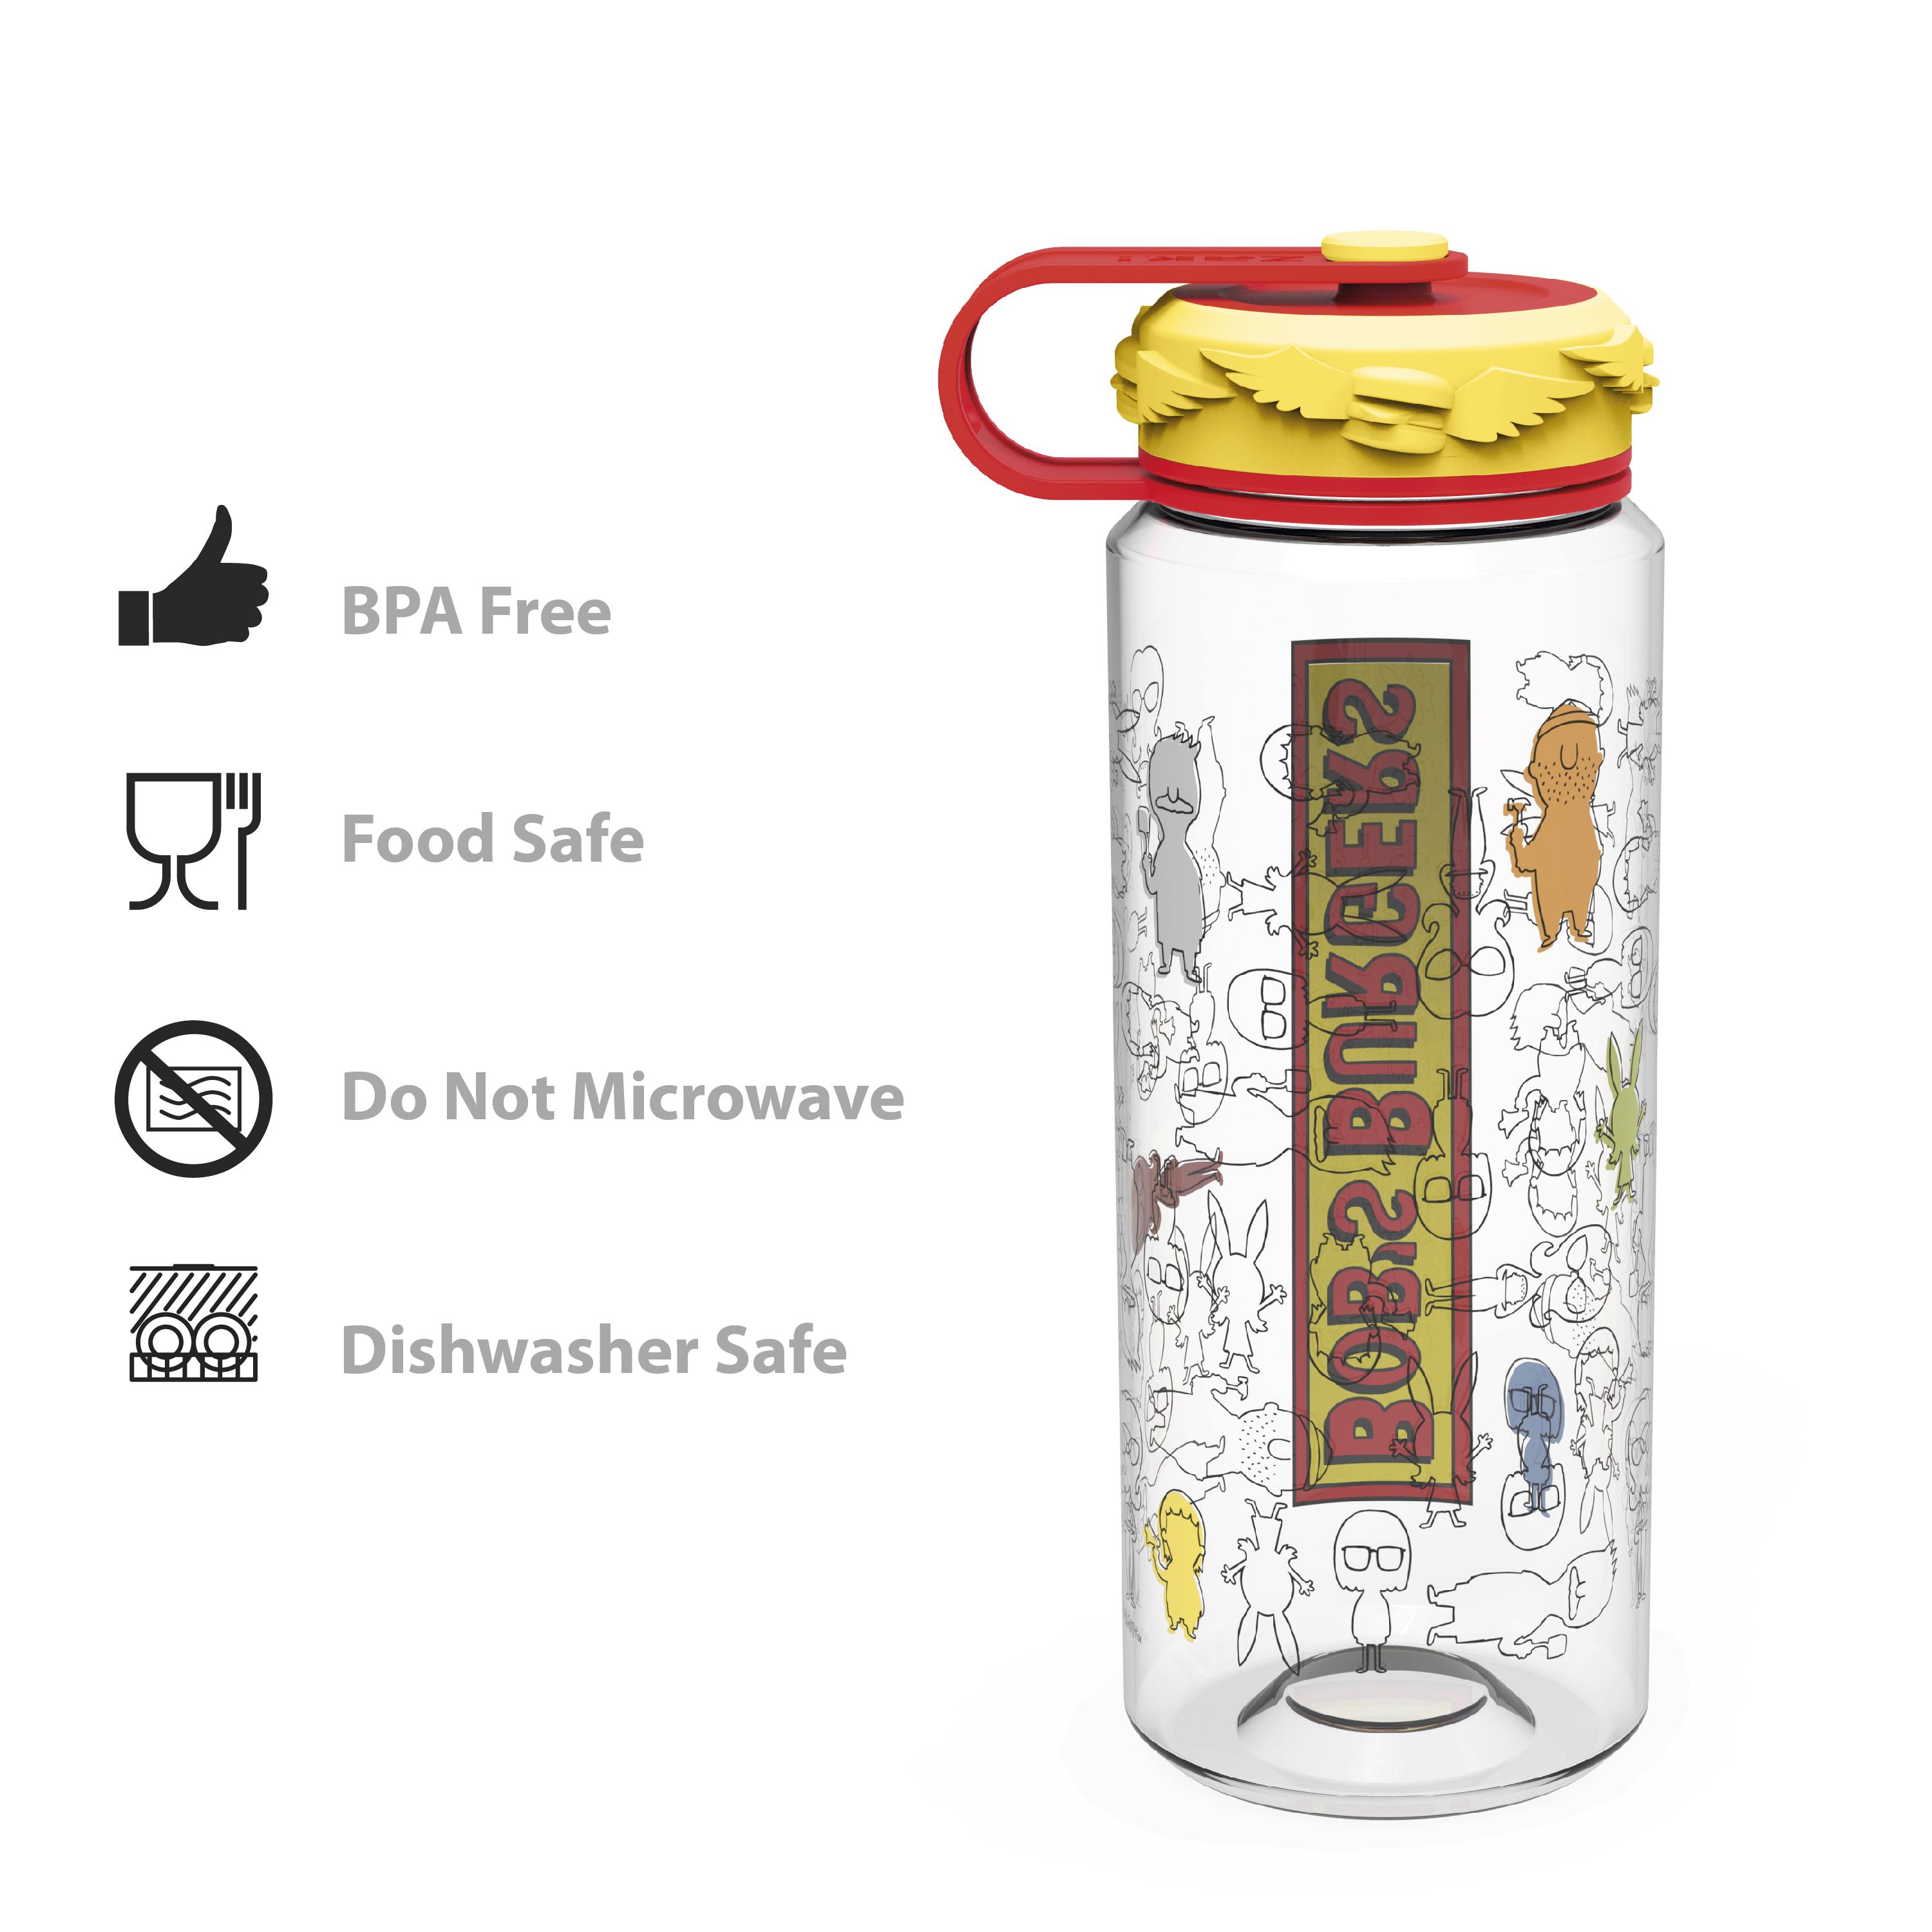 Bobs Burgers 36 ounce Water Bottles, The Belcher Family slideshow image 8